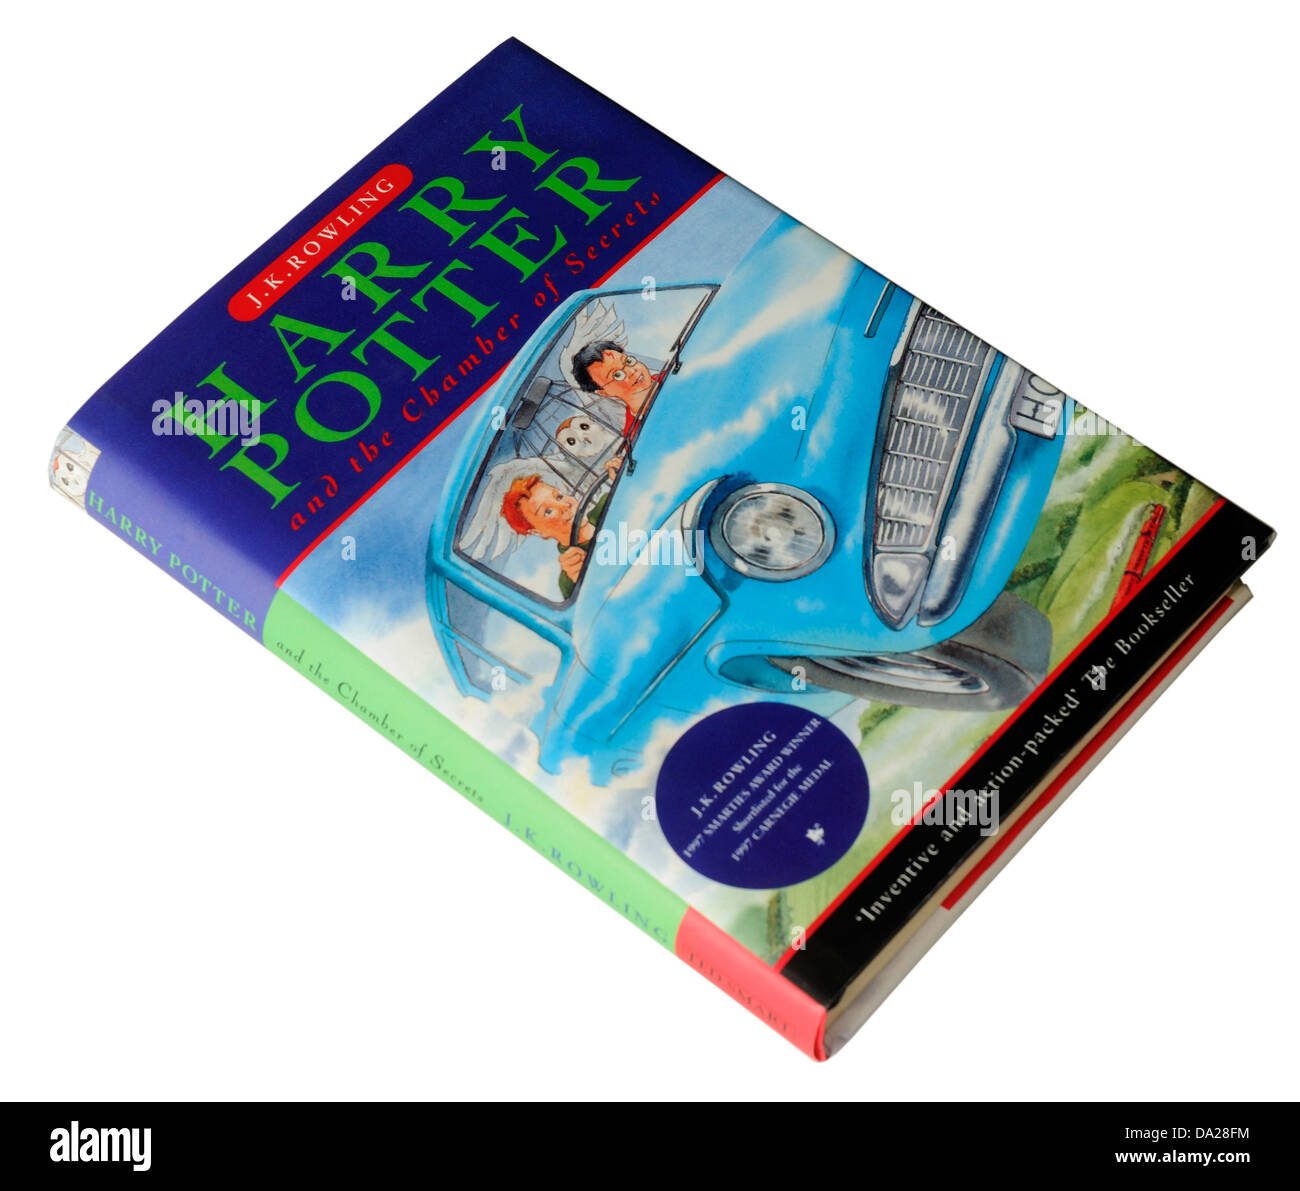 The 2nd Harry Potter book Harry Potter and the Chamber of Secrets - Stock Image